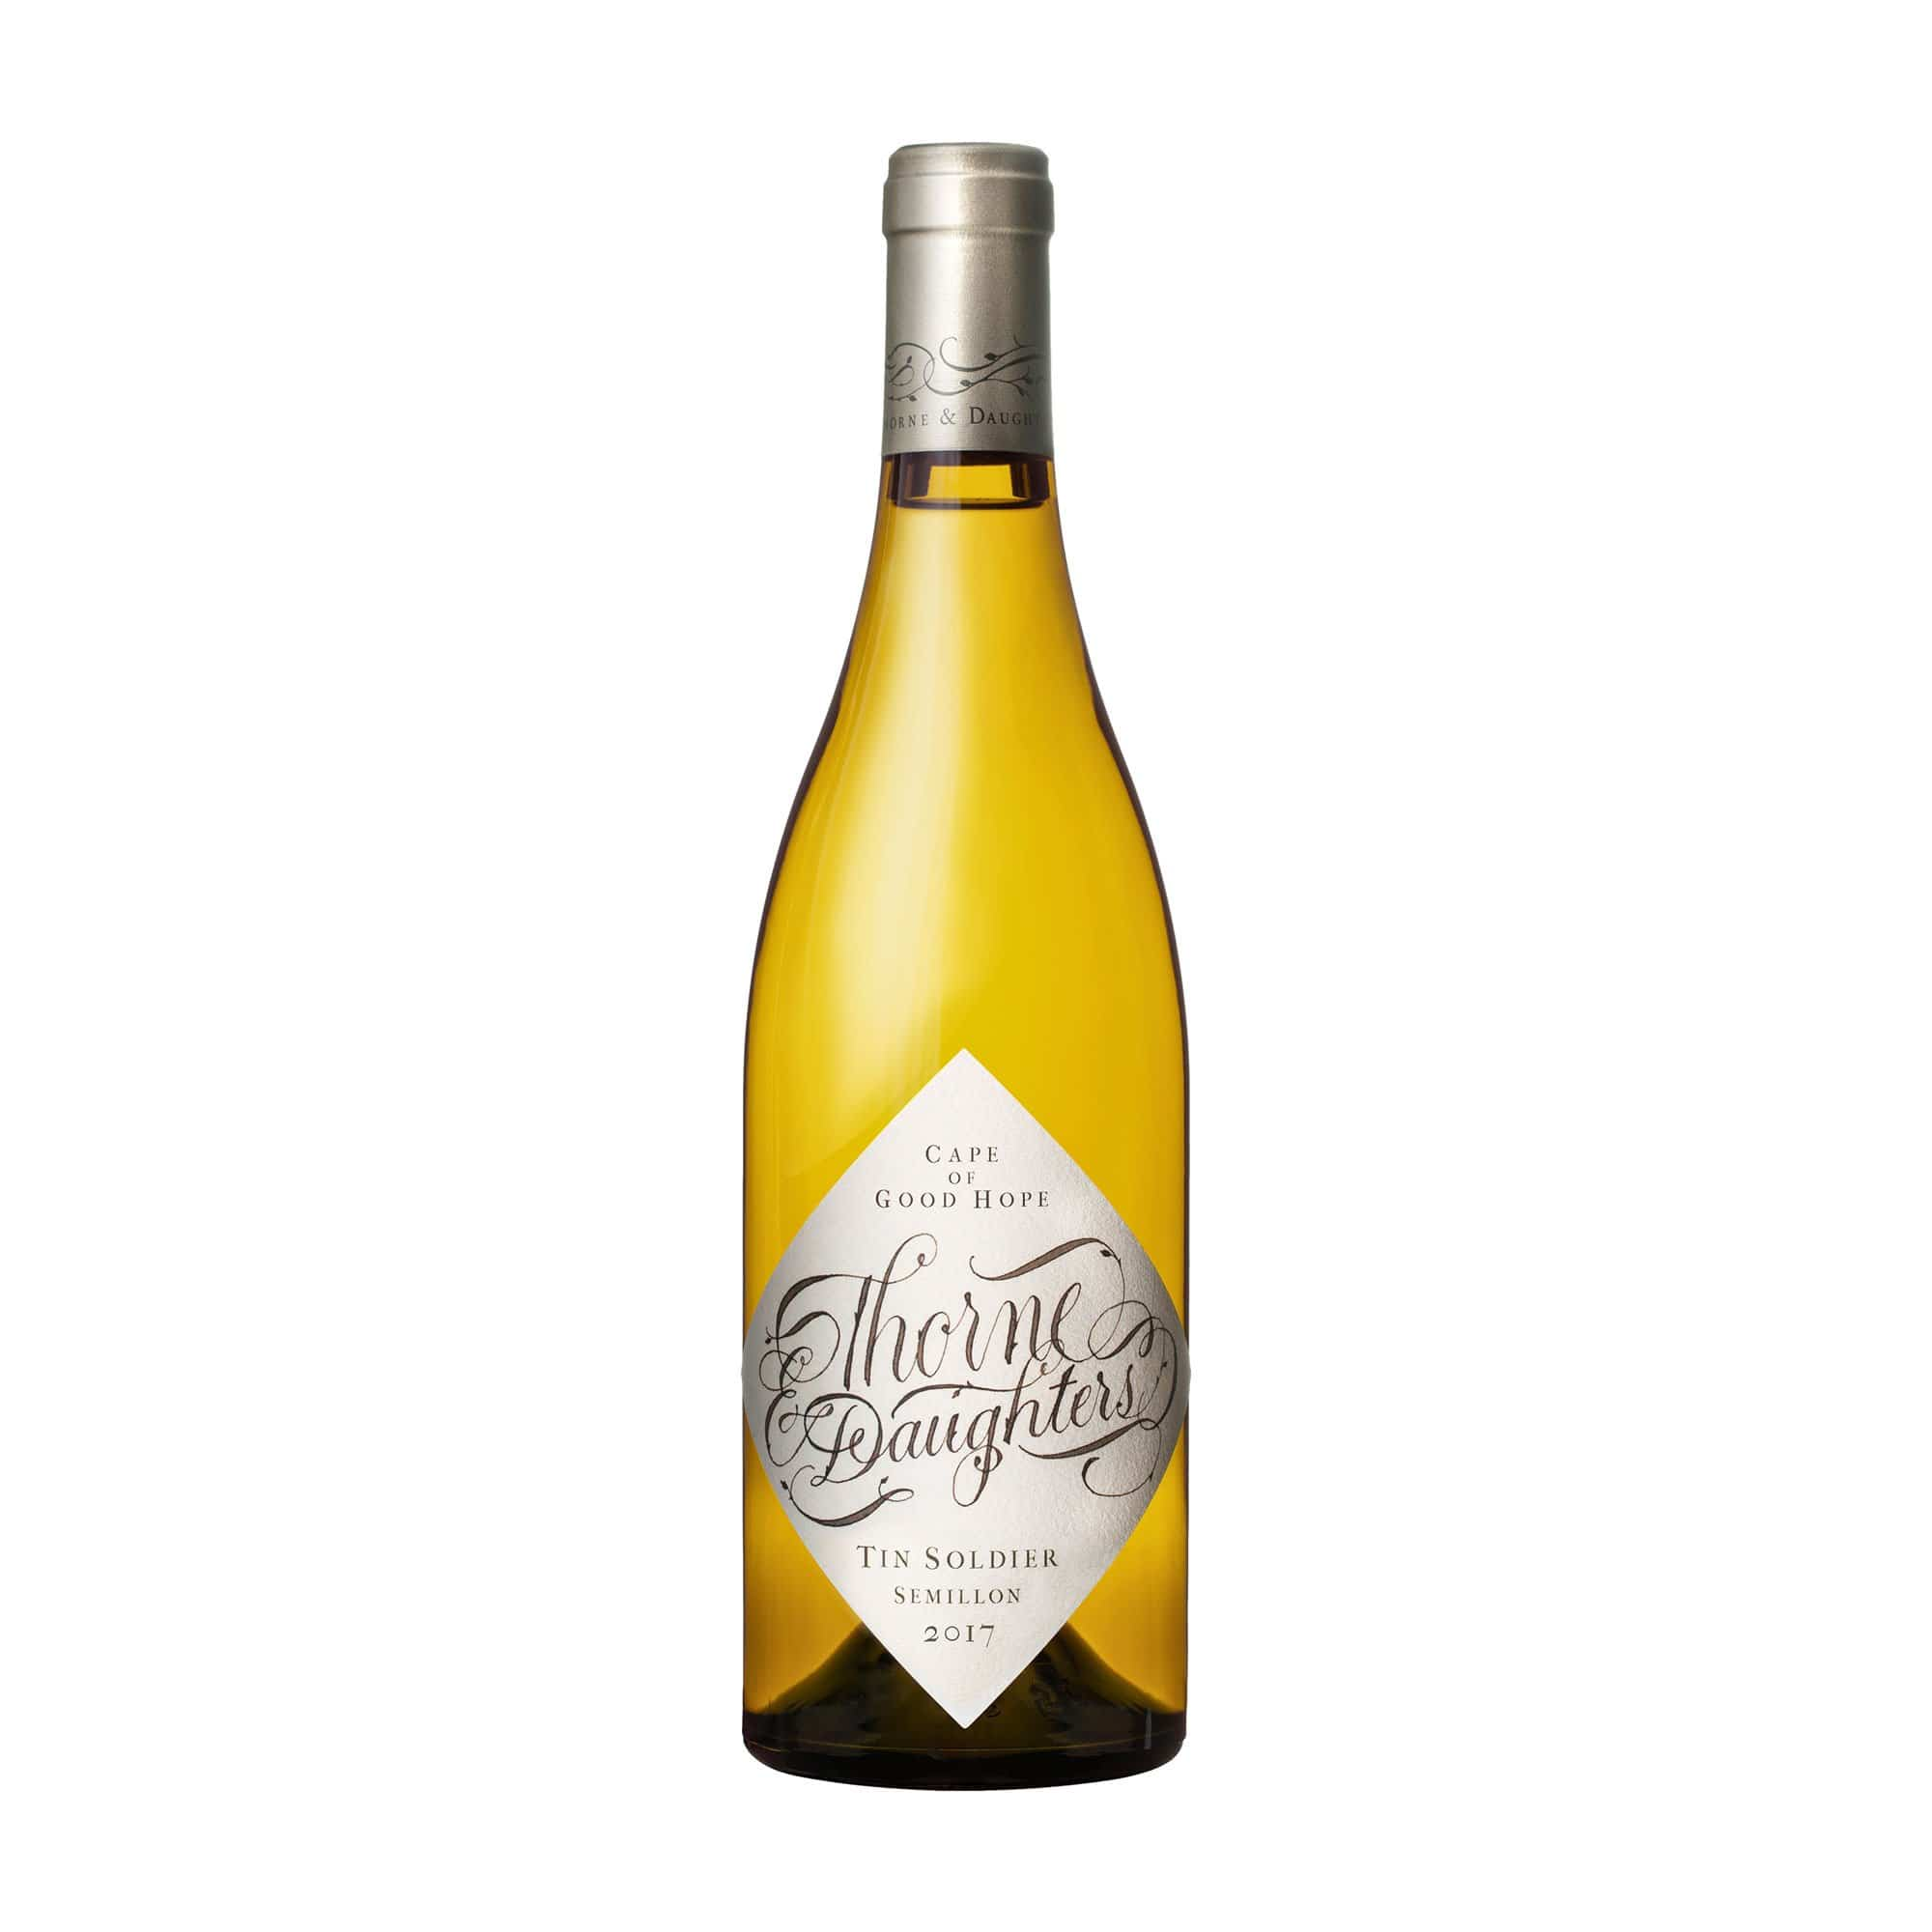 White Wine Thorne & Daughters Tin Soldier Semillon Gris Swartland 2019 (4531622281239)